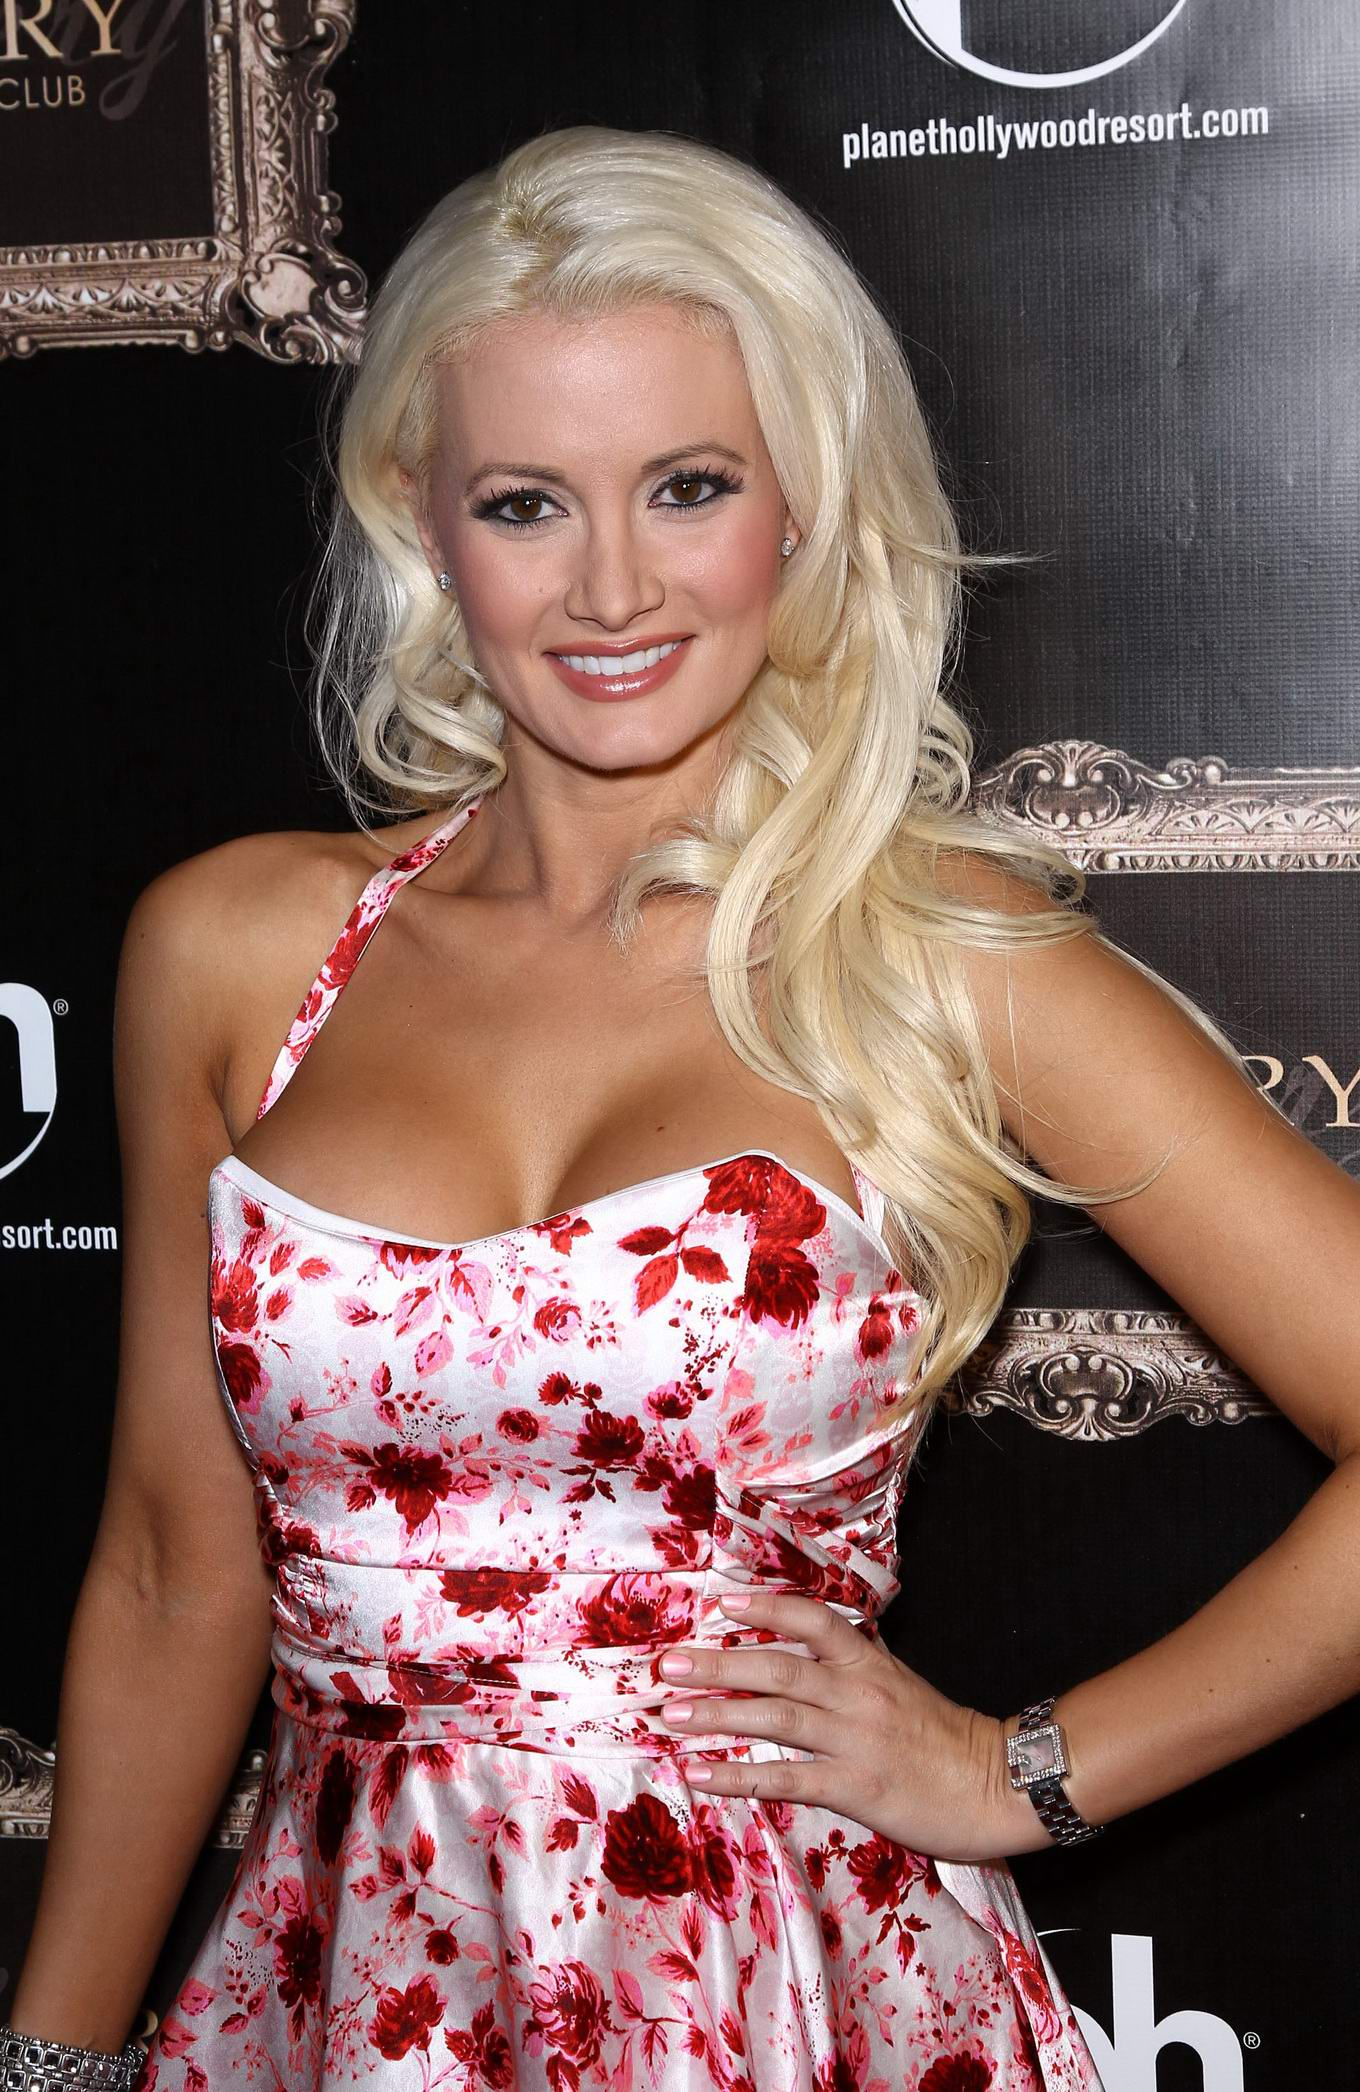 Holly madison porn movie